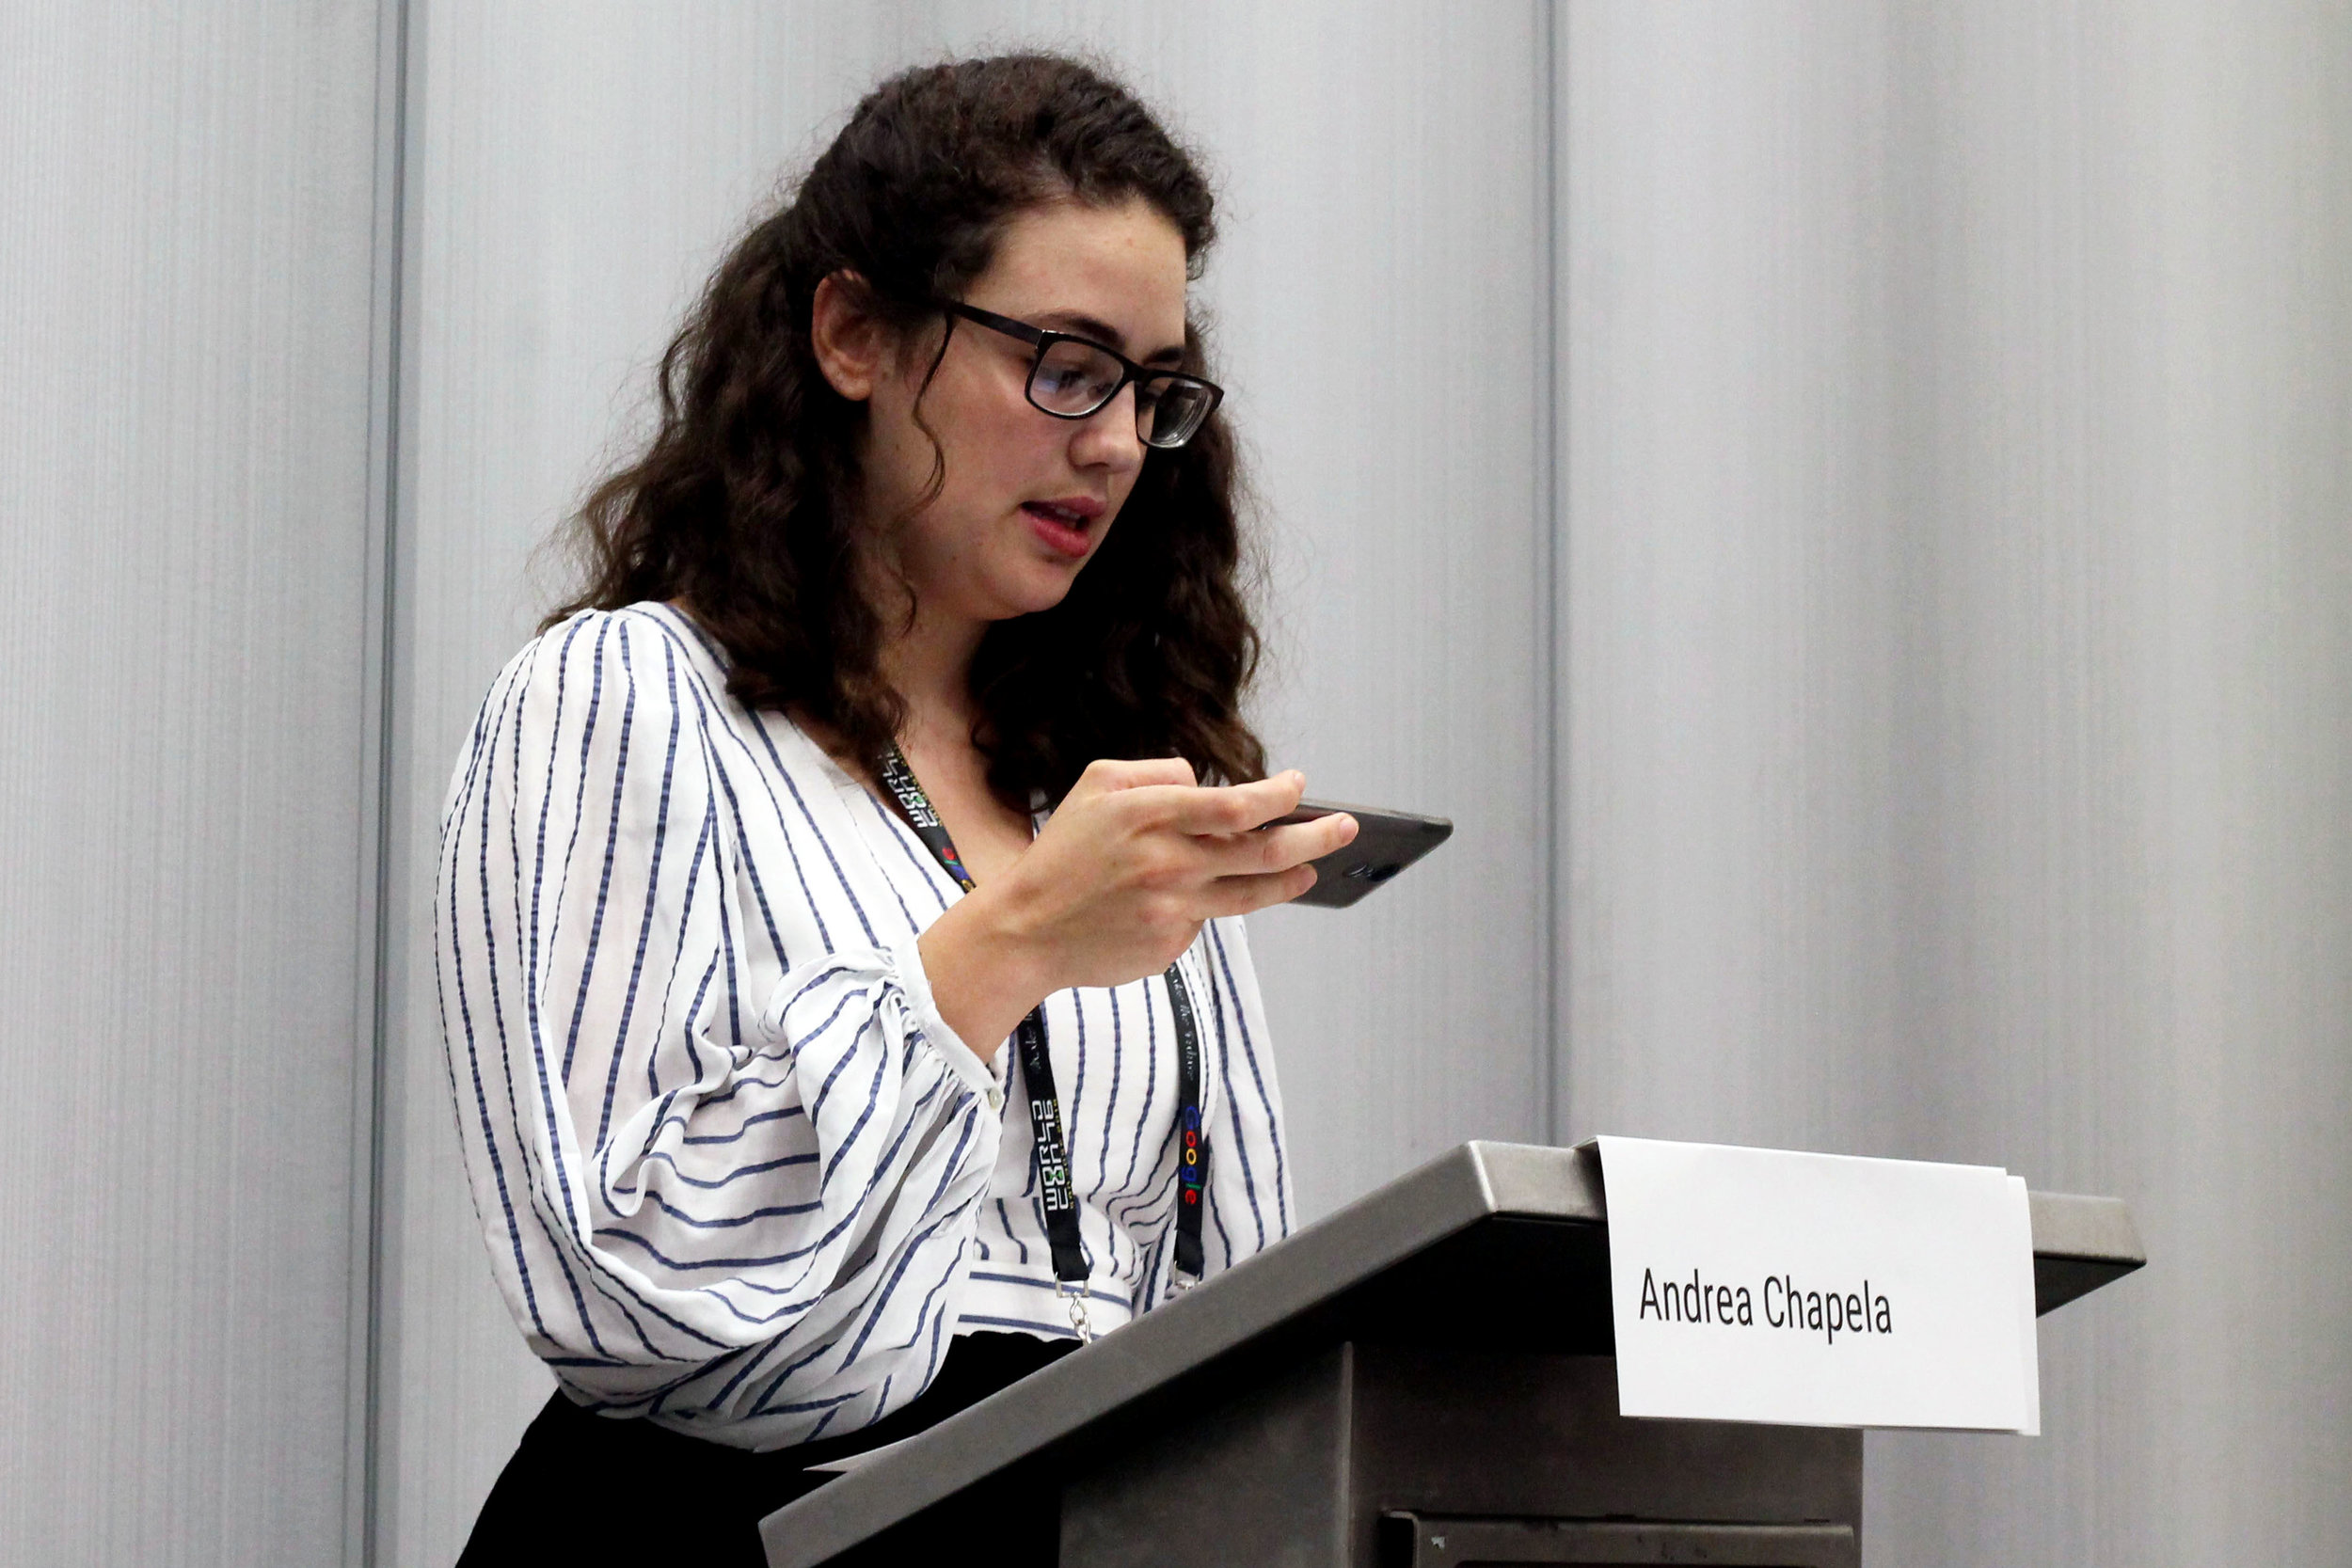 Andrea Chapela at the Mexicanx Initiative English language group reading (Sent by Julia Rios; photo by Kateryna Barnes)